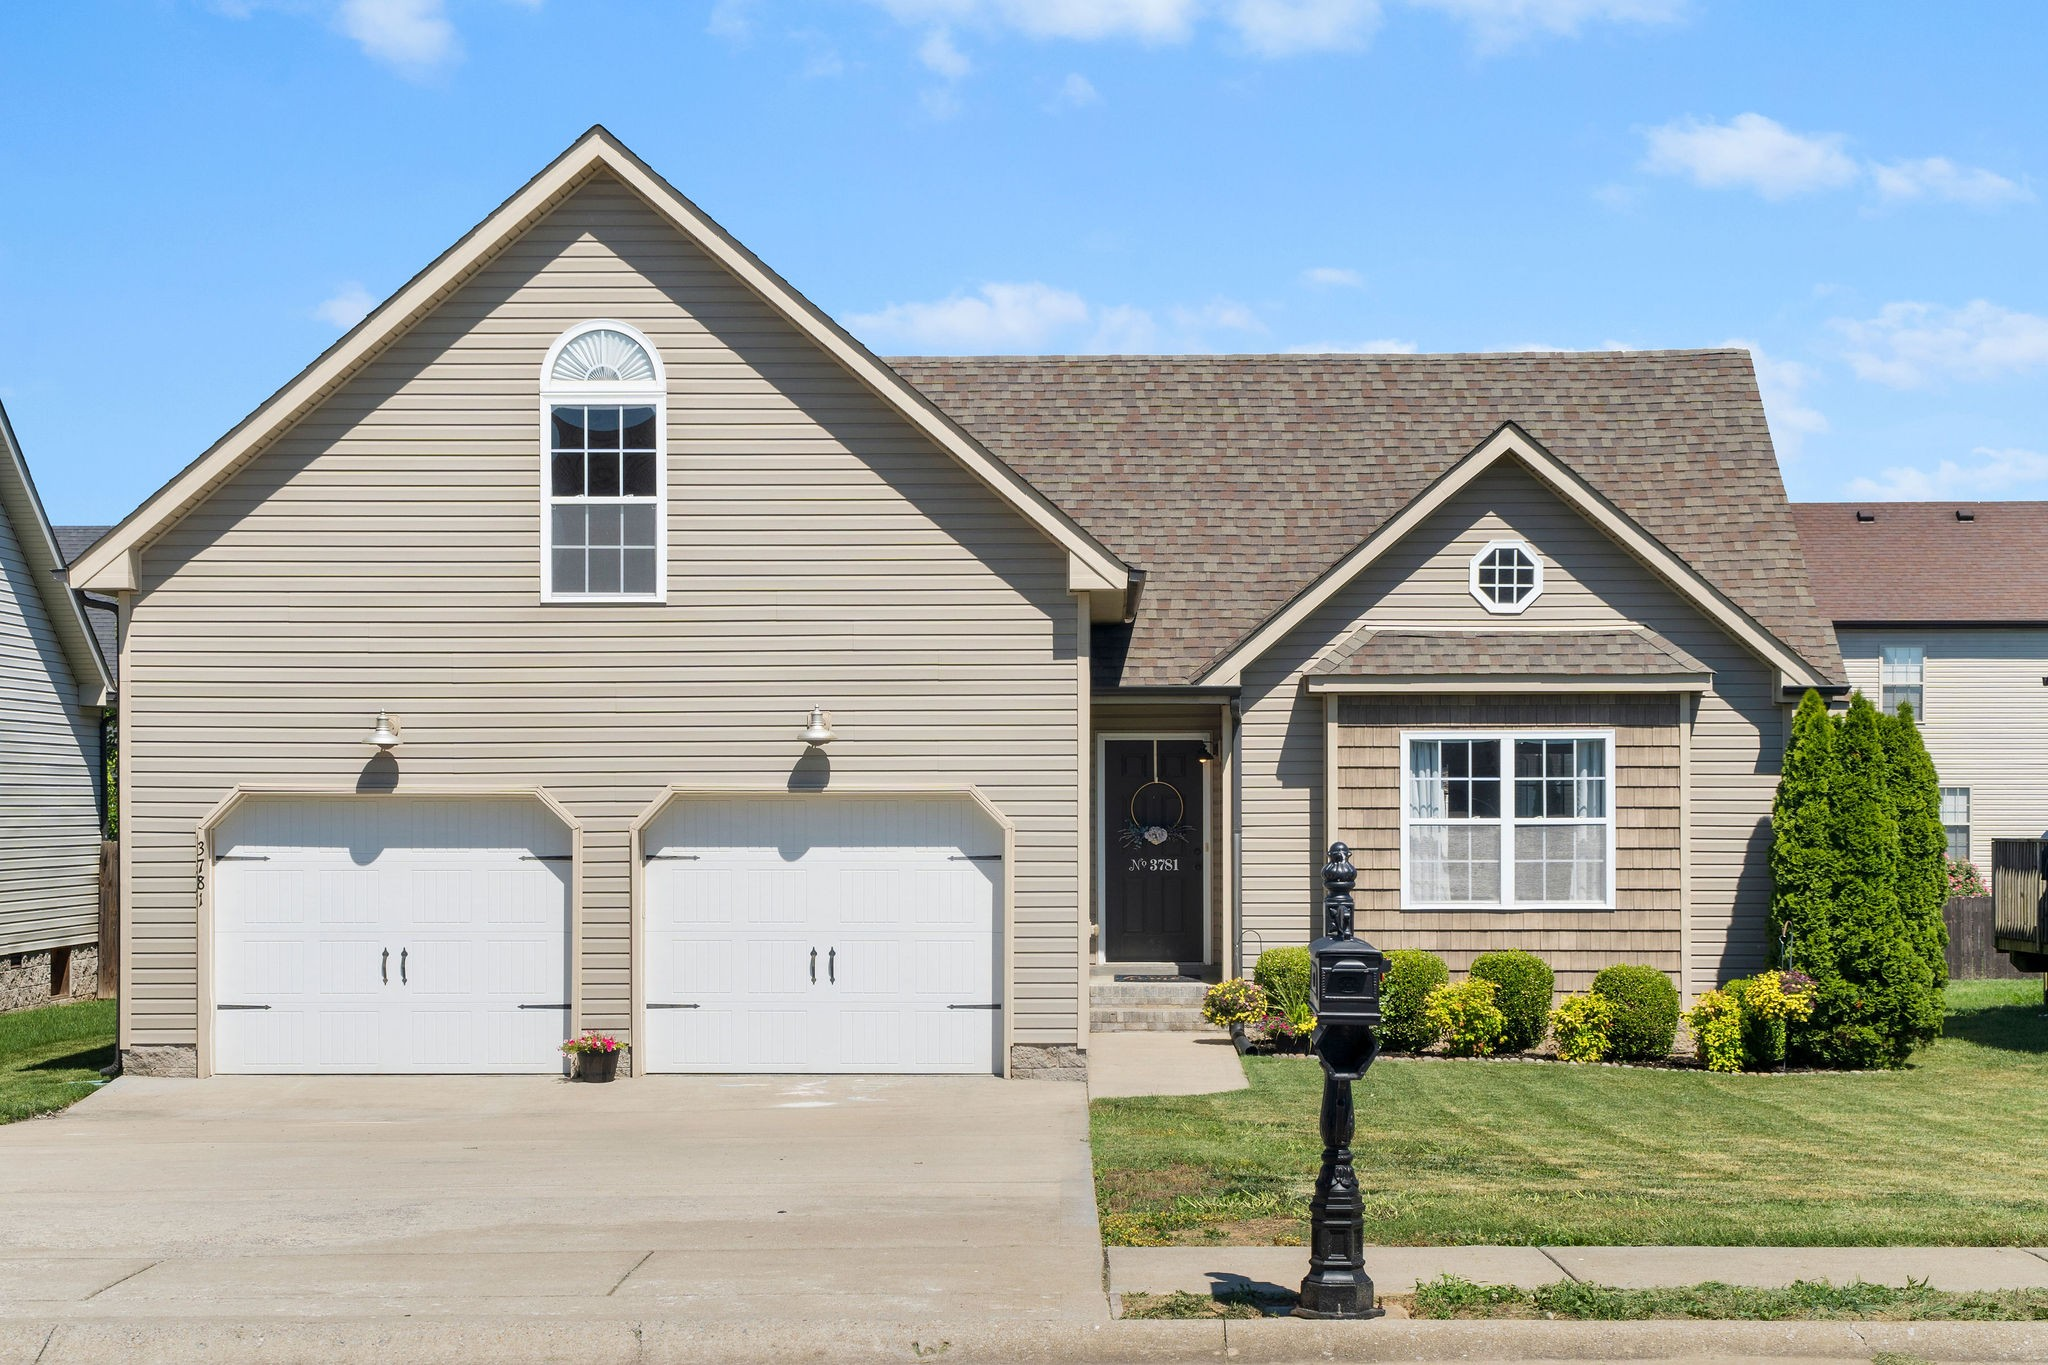 This Adorable, Fox Crossing Ranch Style Home has More to Offer than just a Convenient Location! HUGE, Over the Garage Bonus Room - Beautiful Wood Floors, Vaulted Ceilings & Fireplace in Great Room - Oversized Master Bedroom - All Stainless Steel Kitchen Appliances Convey - Privacy Fenced Backyard